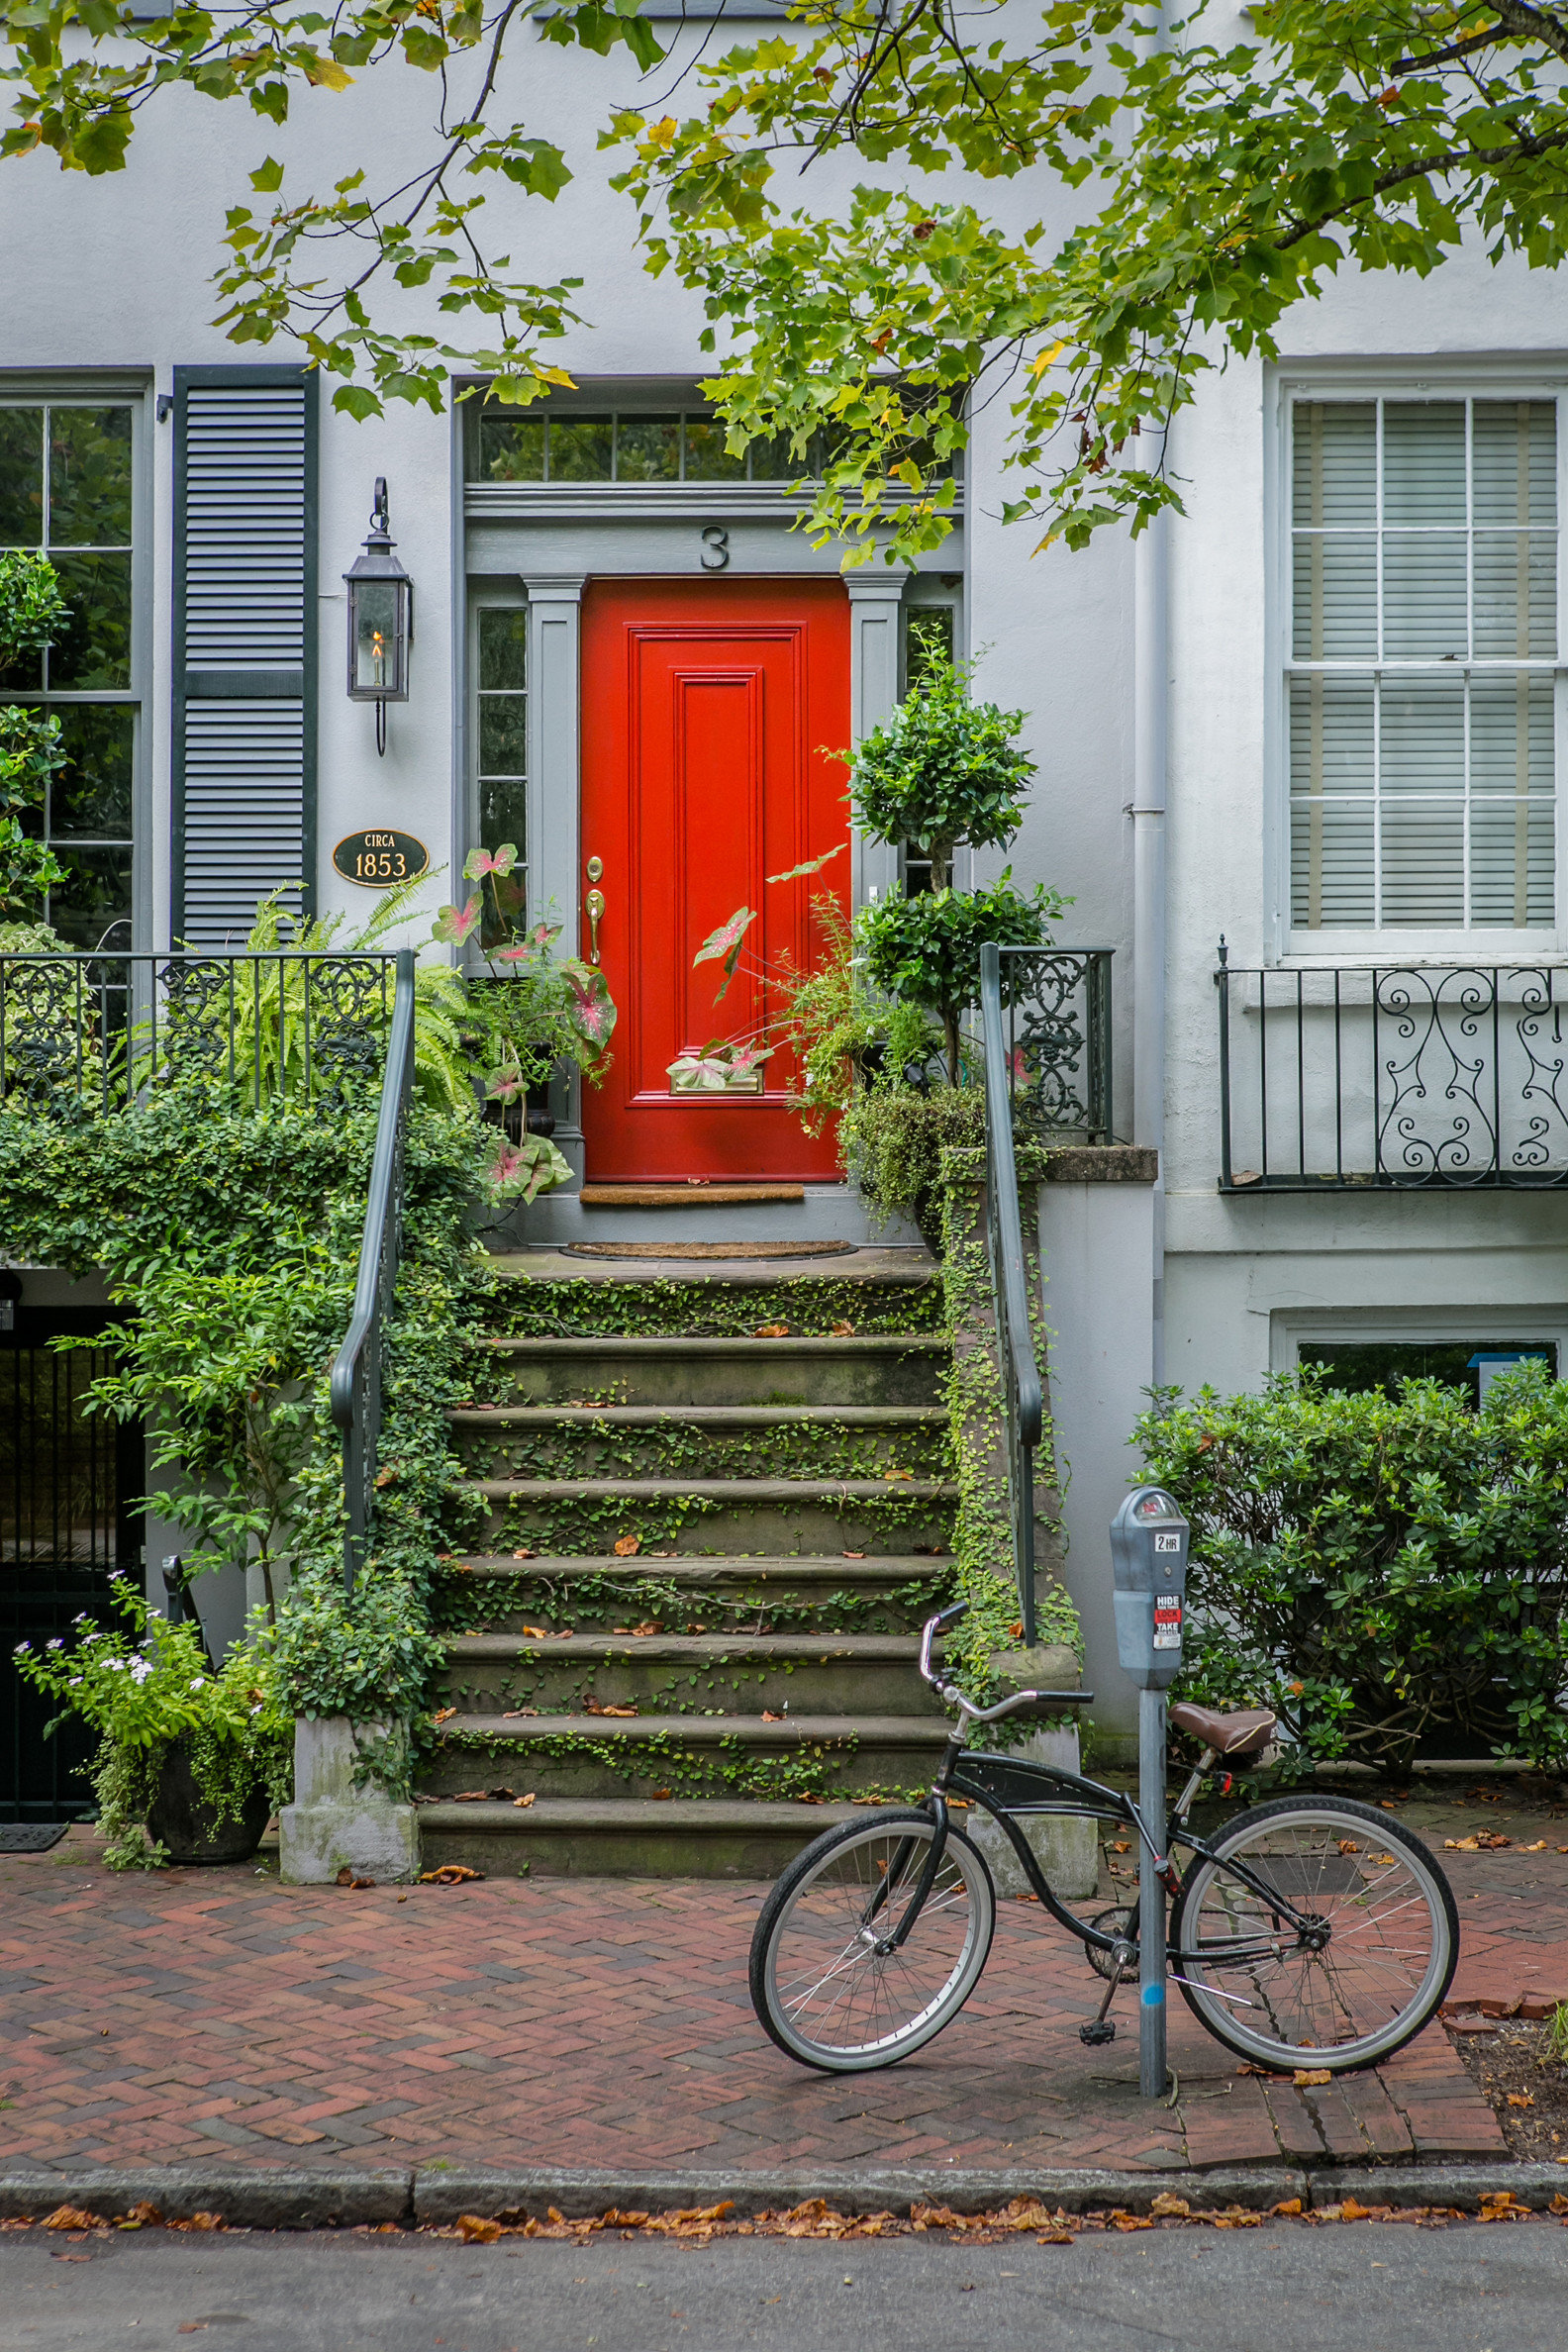 Trip Ideas outdoor bicycle building tree sidewalk residential area neighbourhood yard home parked vehicle porch backyard Garden flower suburb outdoor structure shed cottage scooter